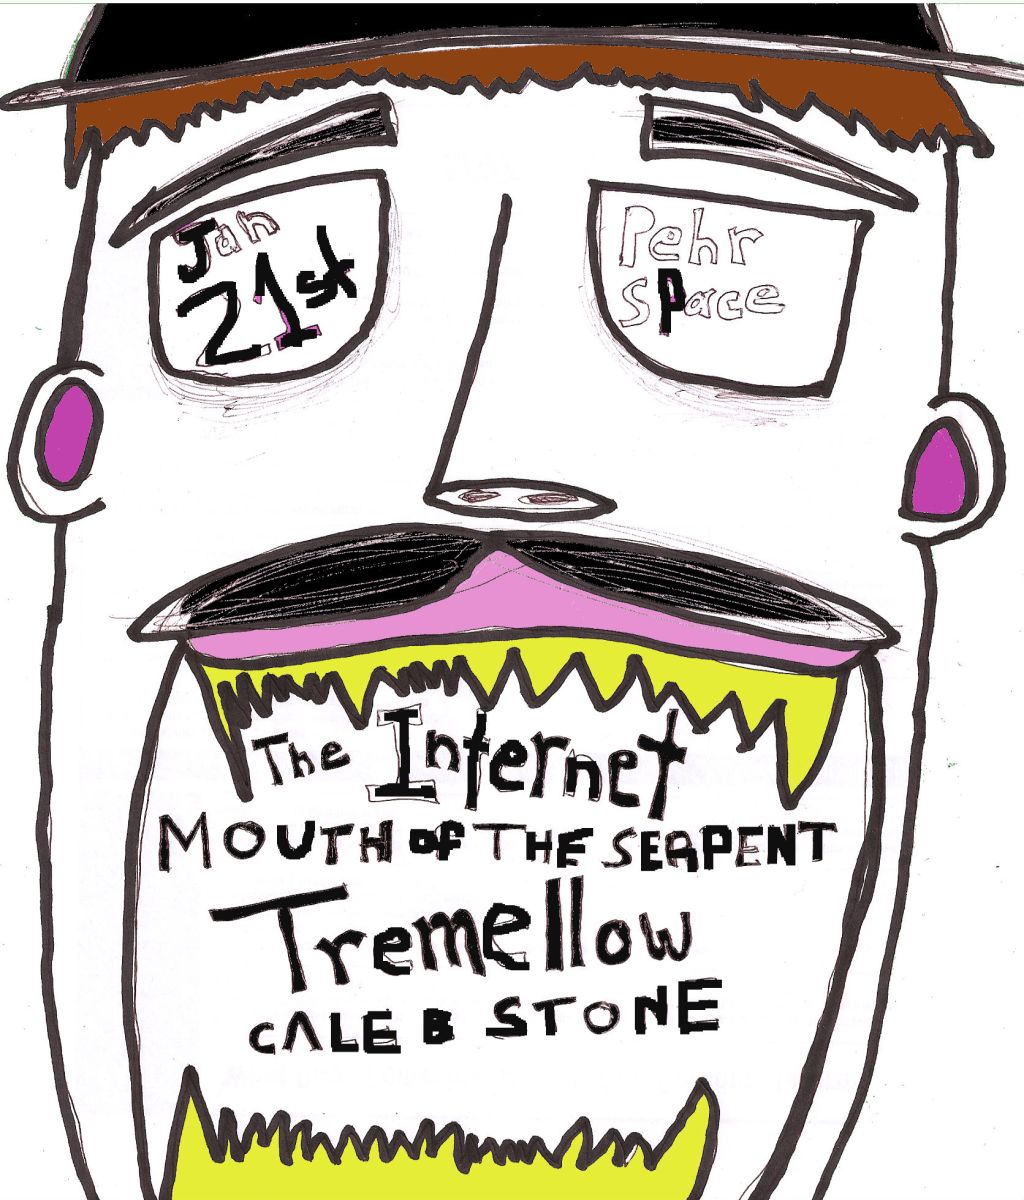 The Internet, Mouth of the Serpent, Caleb Stone, Tremellow at Pehr